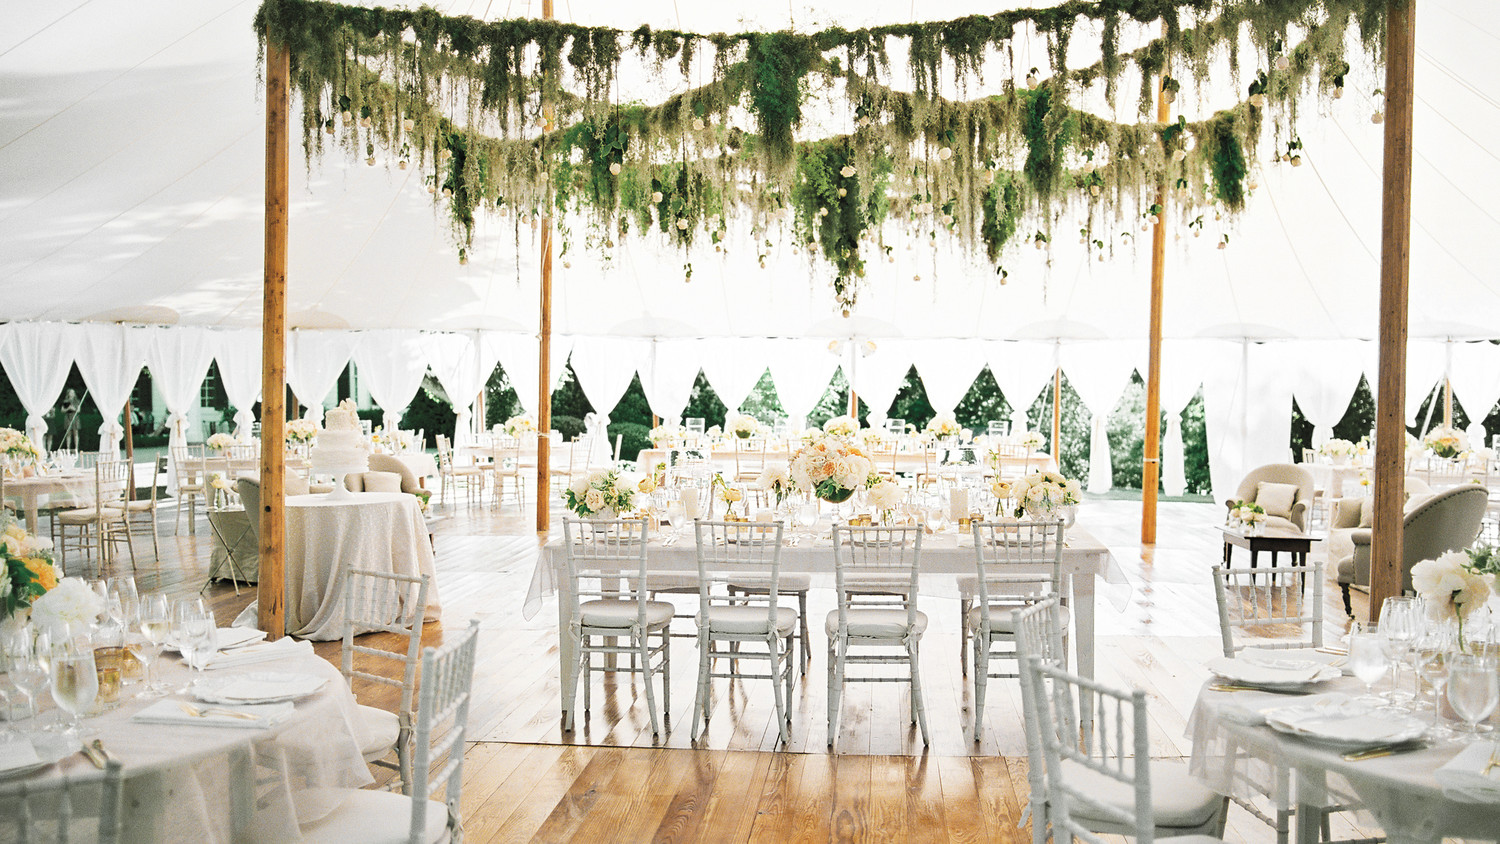 33 Tent Decorating Ideas to Upgrade Your Wedding Reception